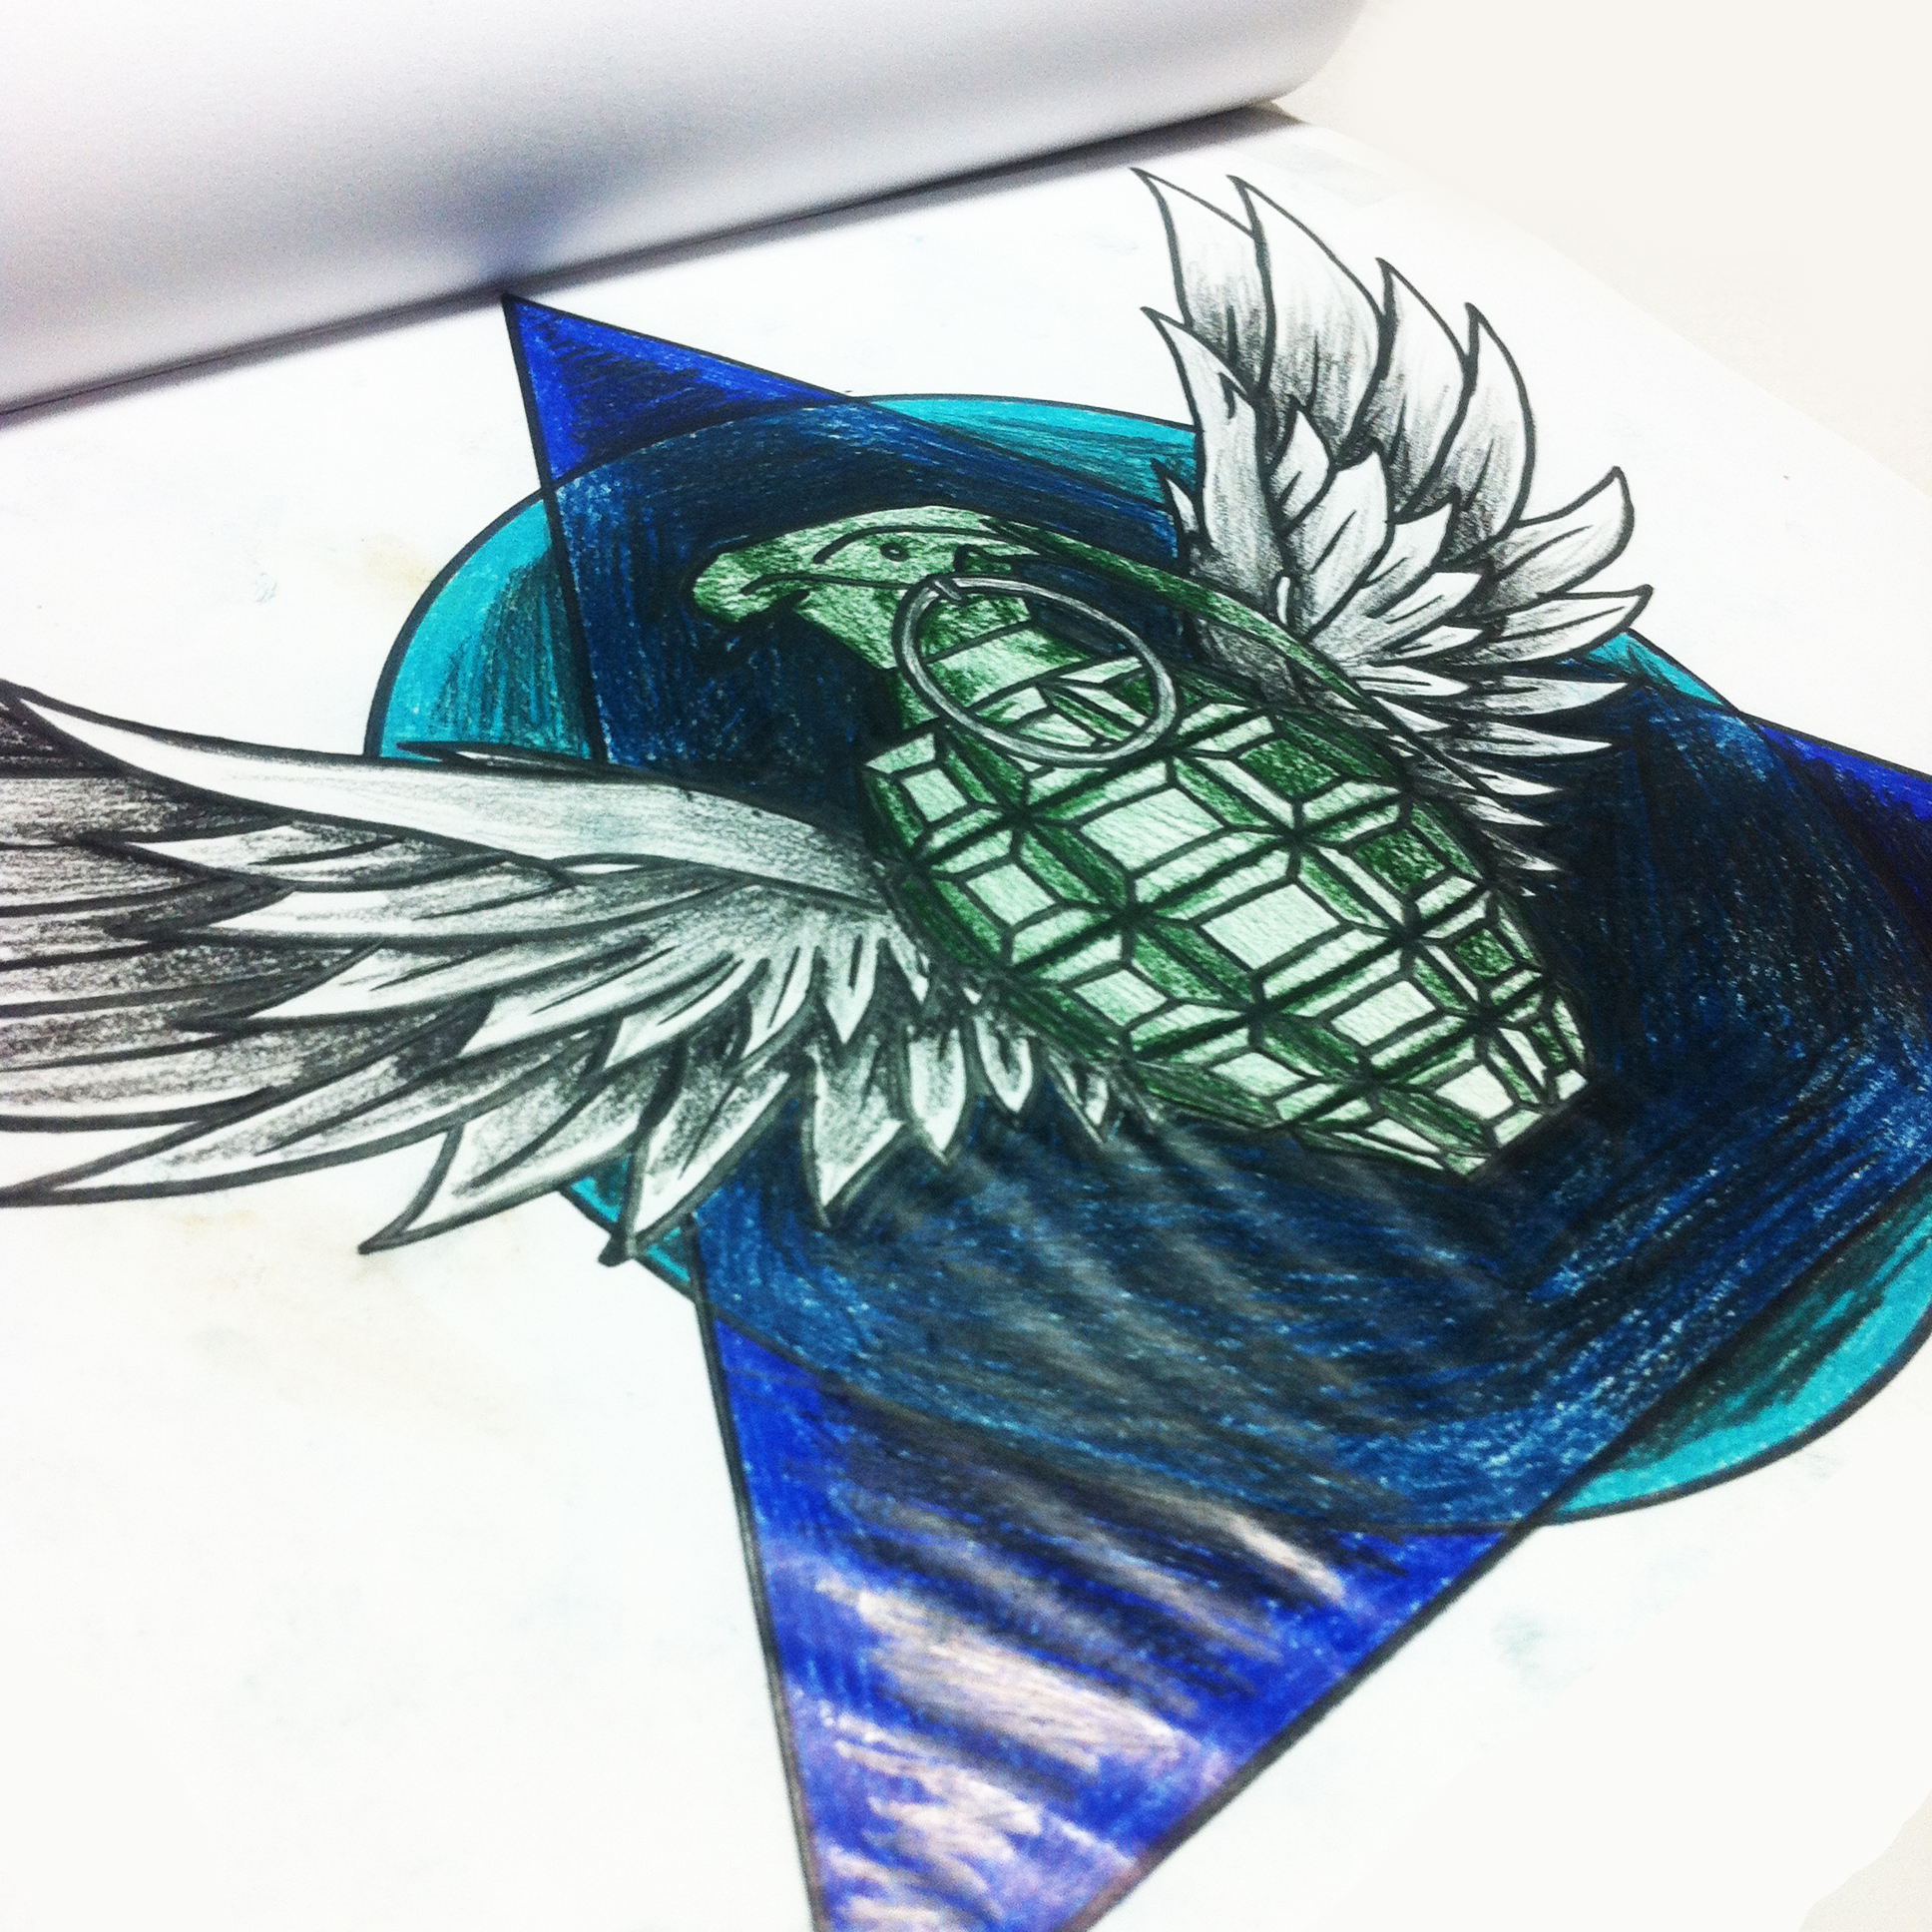 Drawn grenade wing Tattoo new sketches triangle new